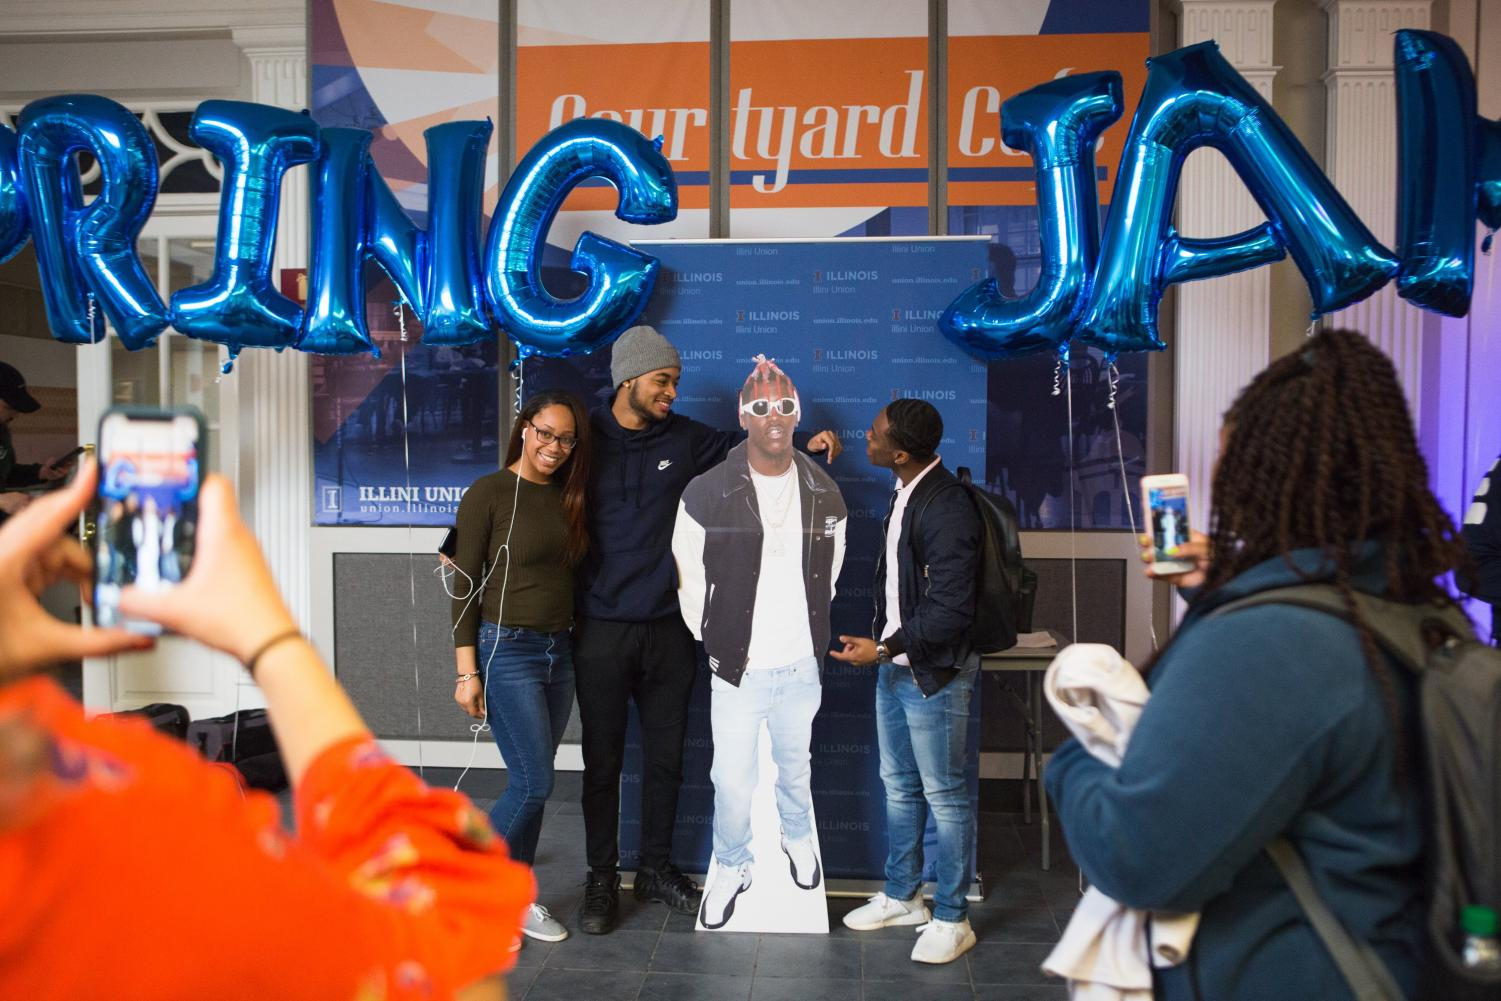 Students pose with a cutout of Lil Yachty as he was just announced as the performing artist for 2019's Spring Jam in the Courtyard Cafe on Thursday.